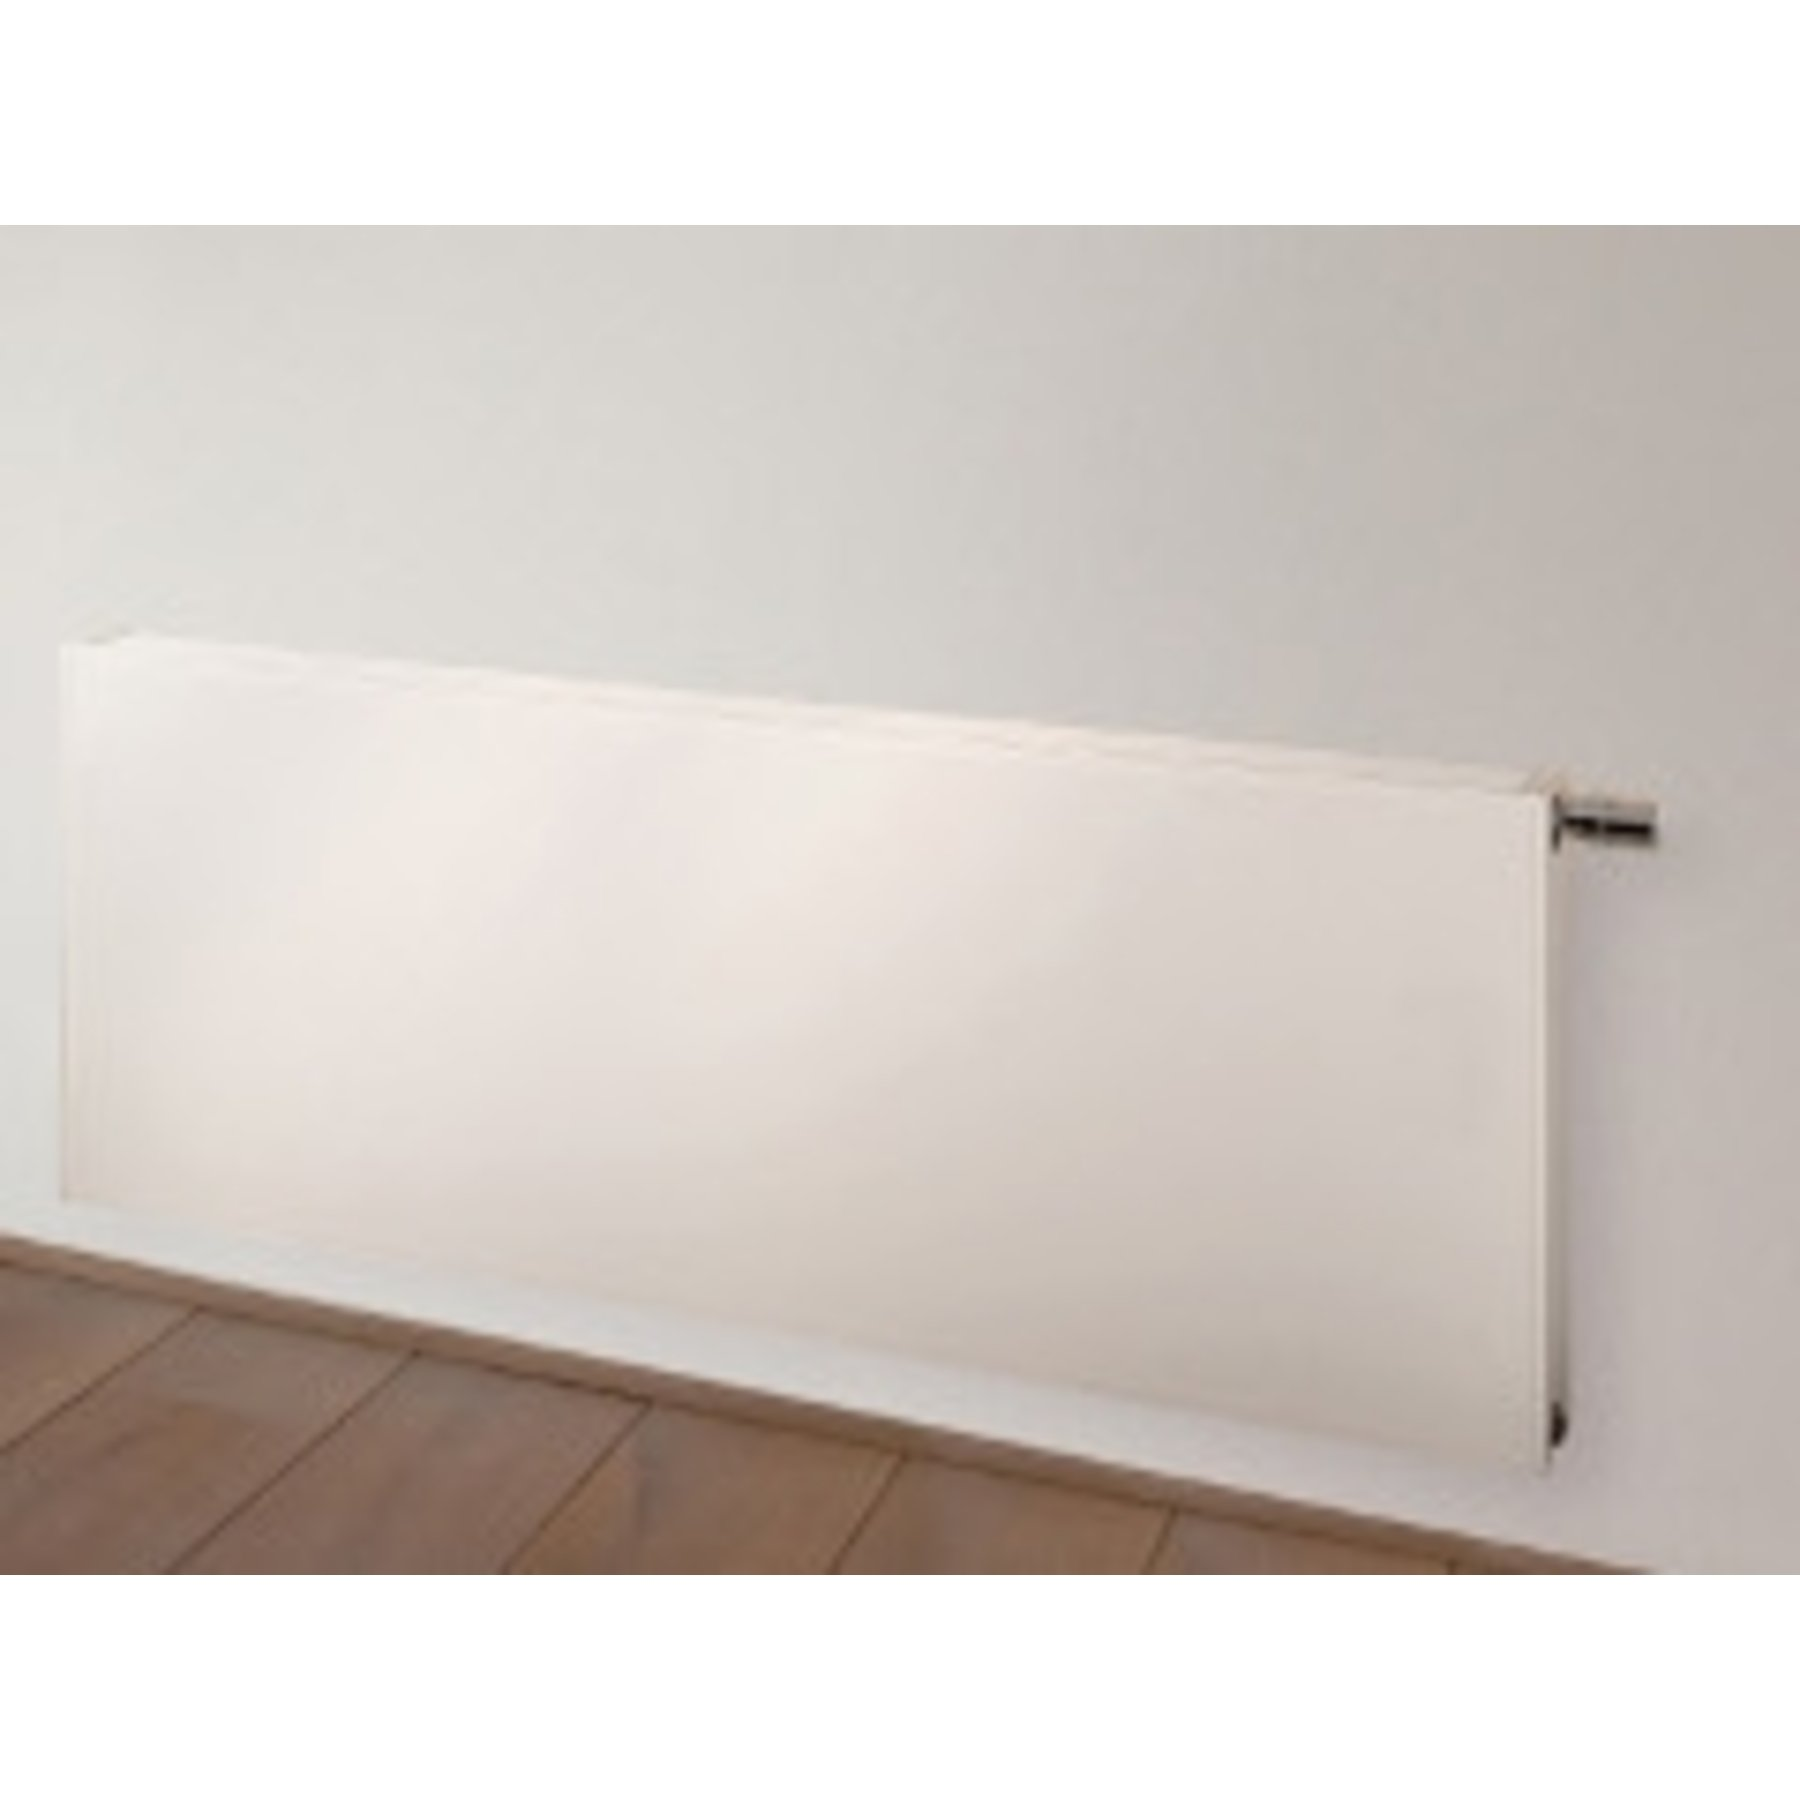 Vasco Flatline Paneelradiator type 22 700x400mm 749W vlak wit structuur (S600)